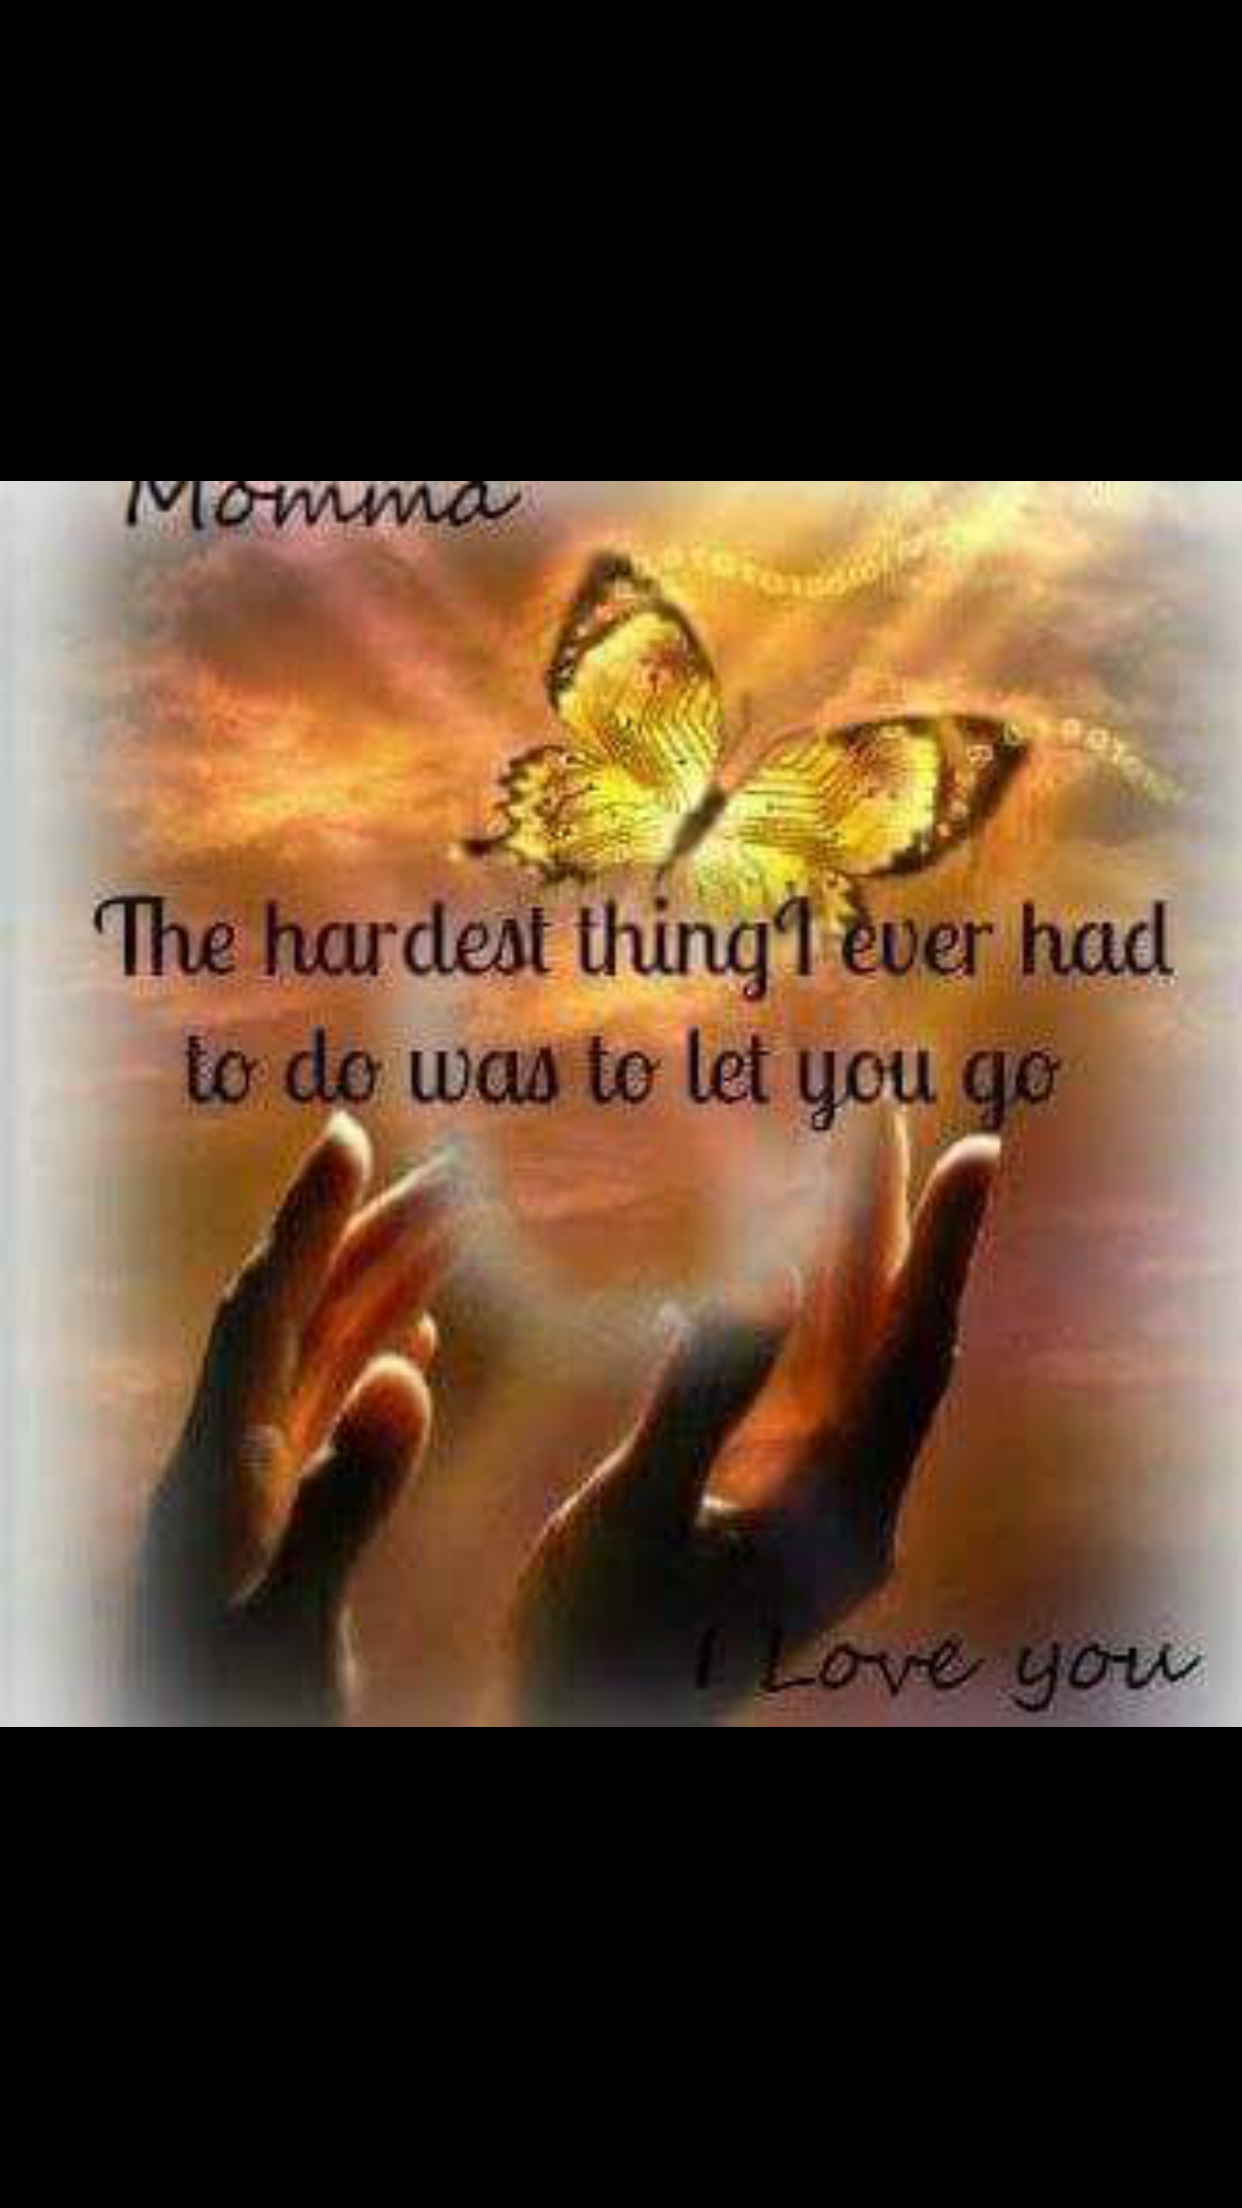 Pin By Mary Marston On Loss Of Loved One Pinterest Grief Poem